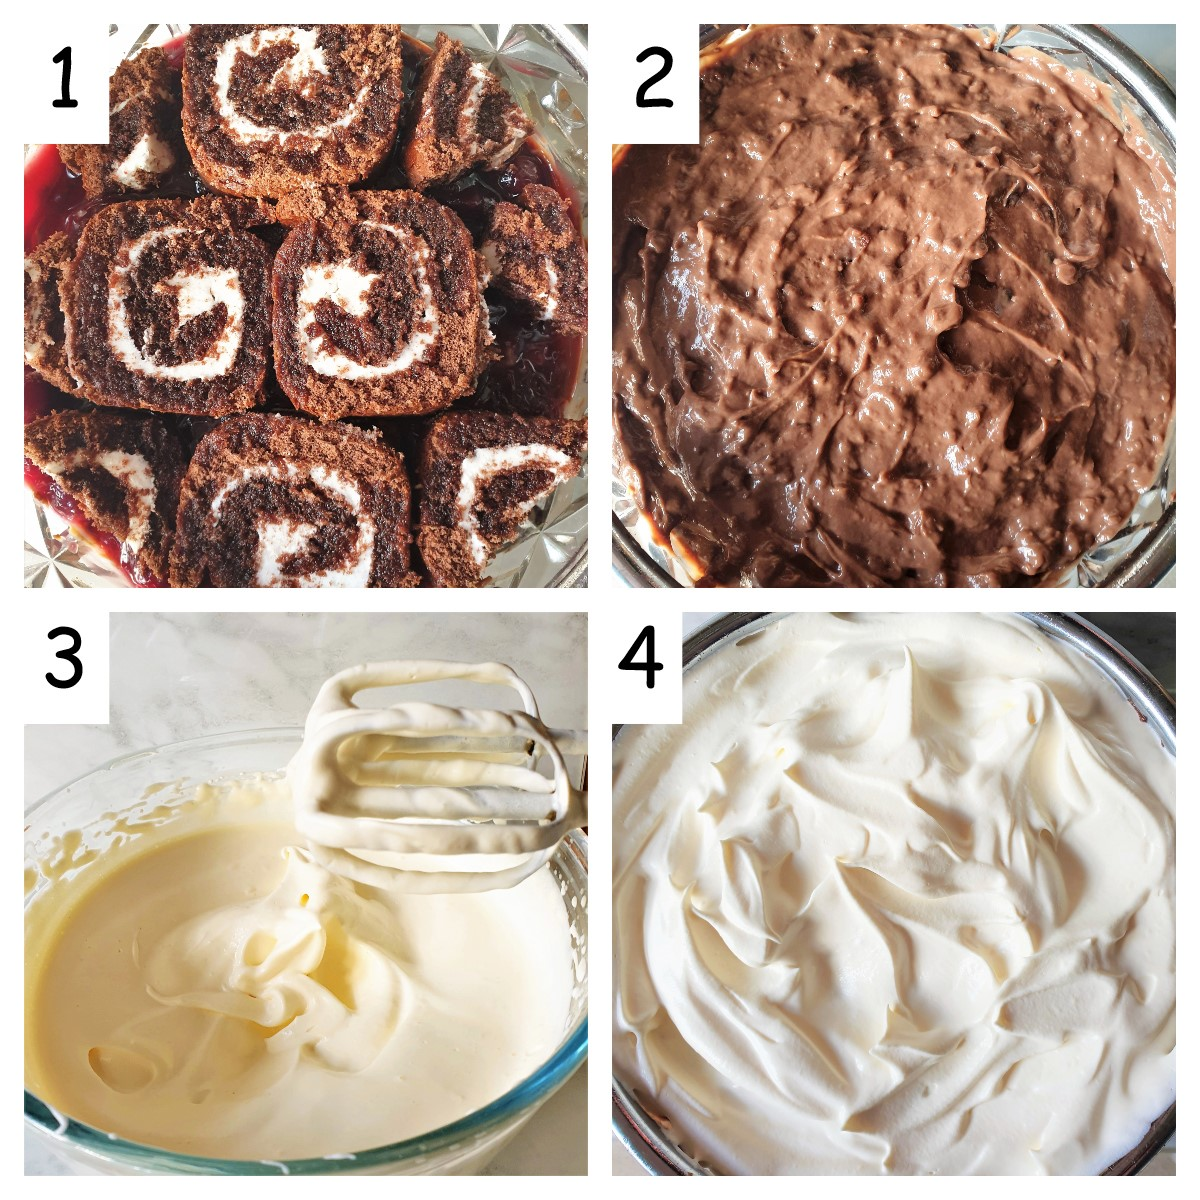 Collage showing how to complete the black forest trifle.